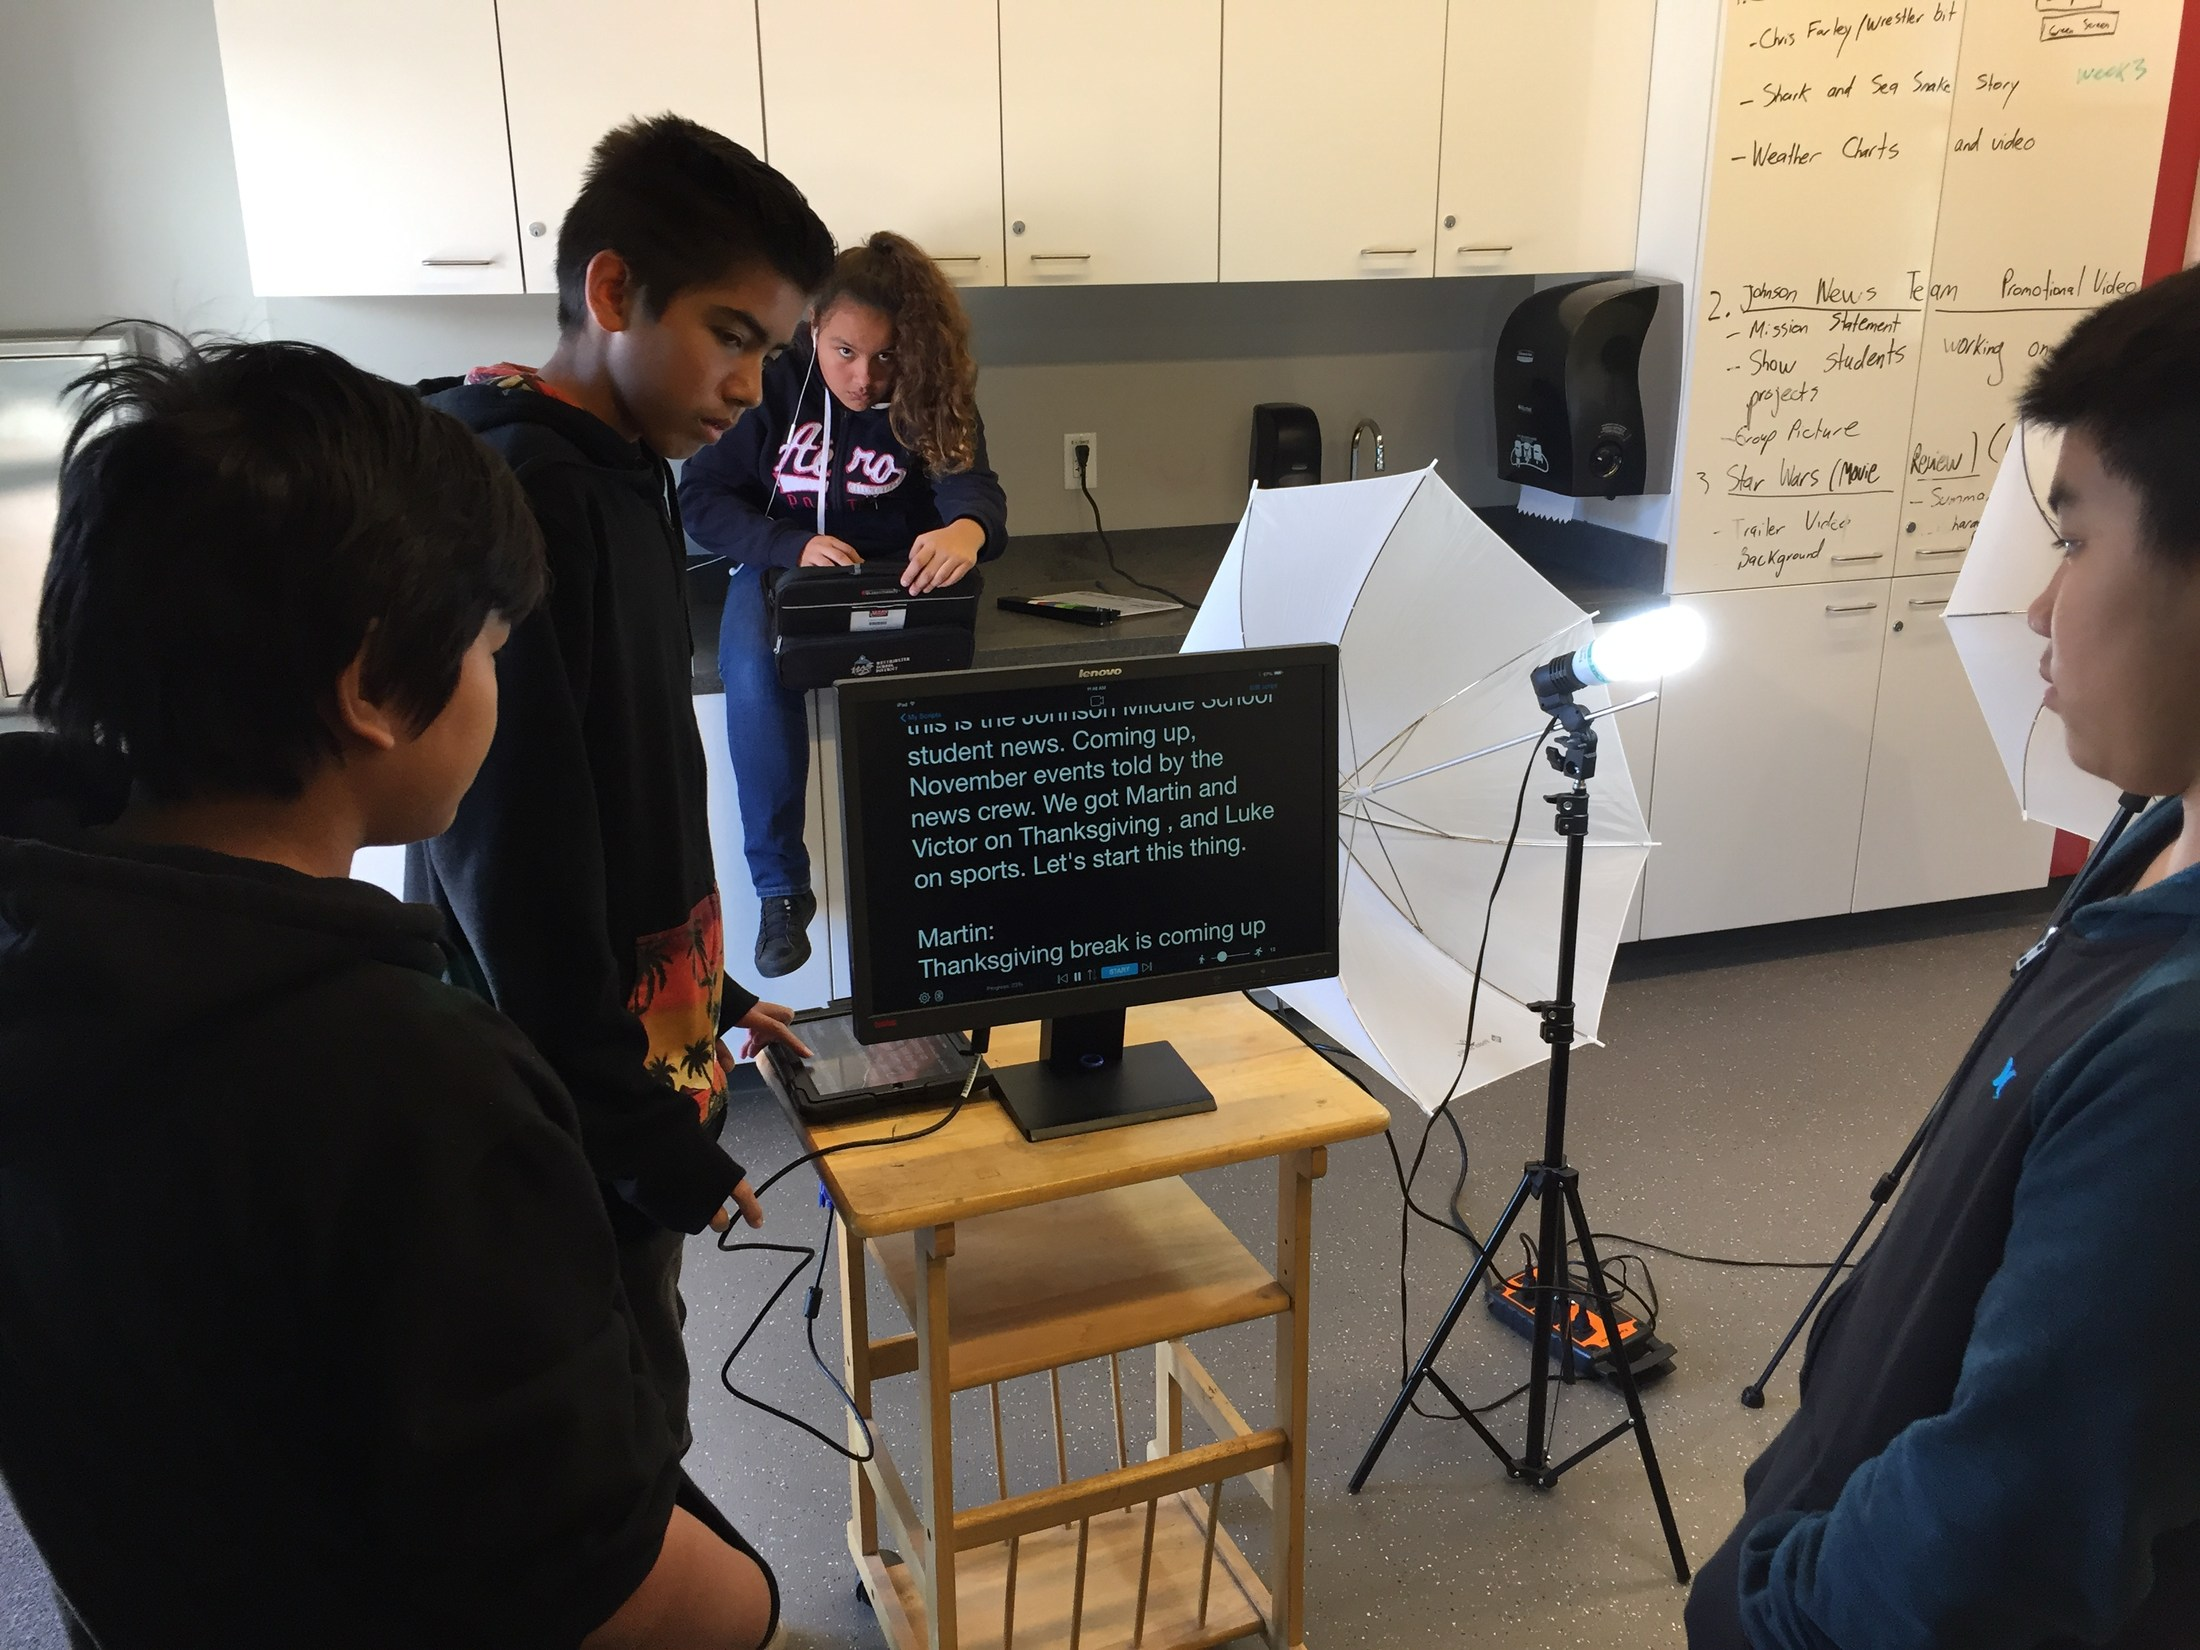 Students use Teleprompter